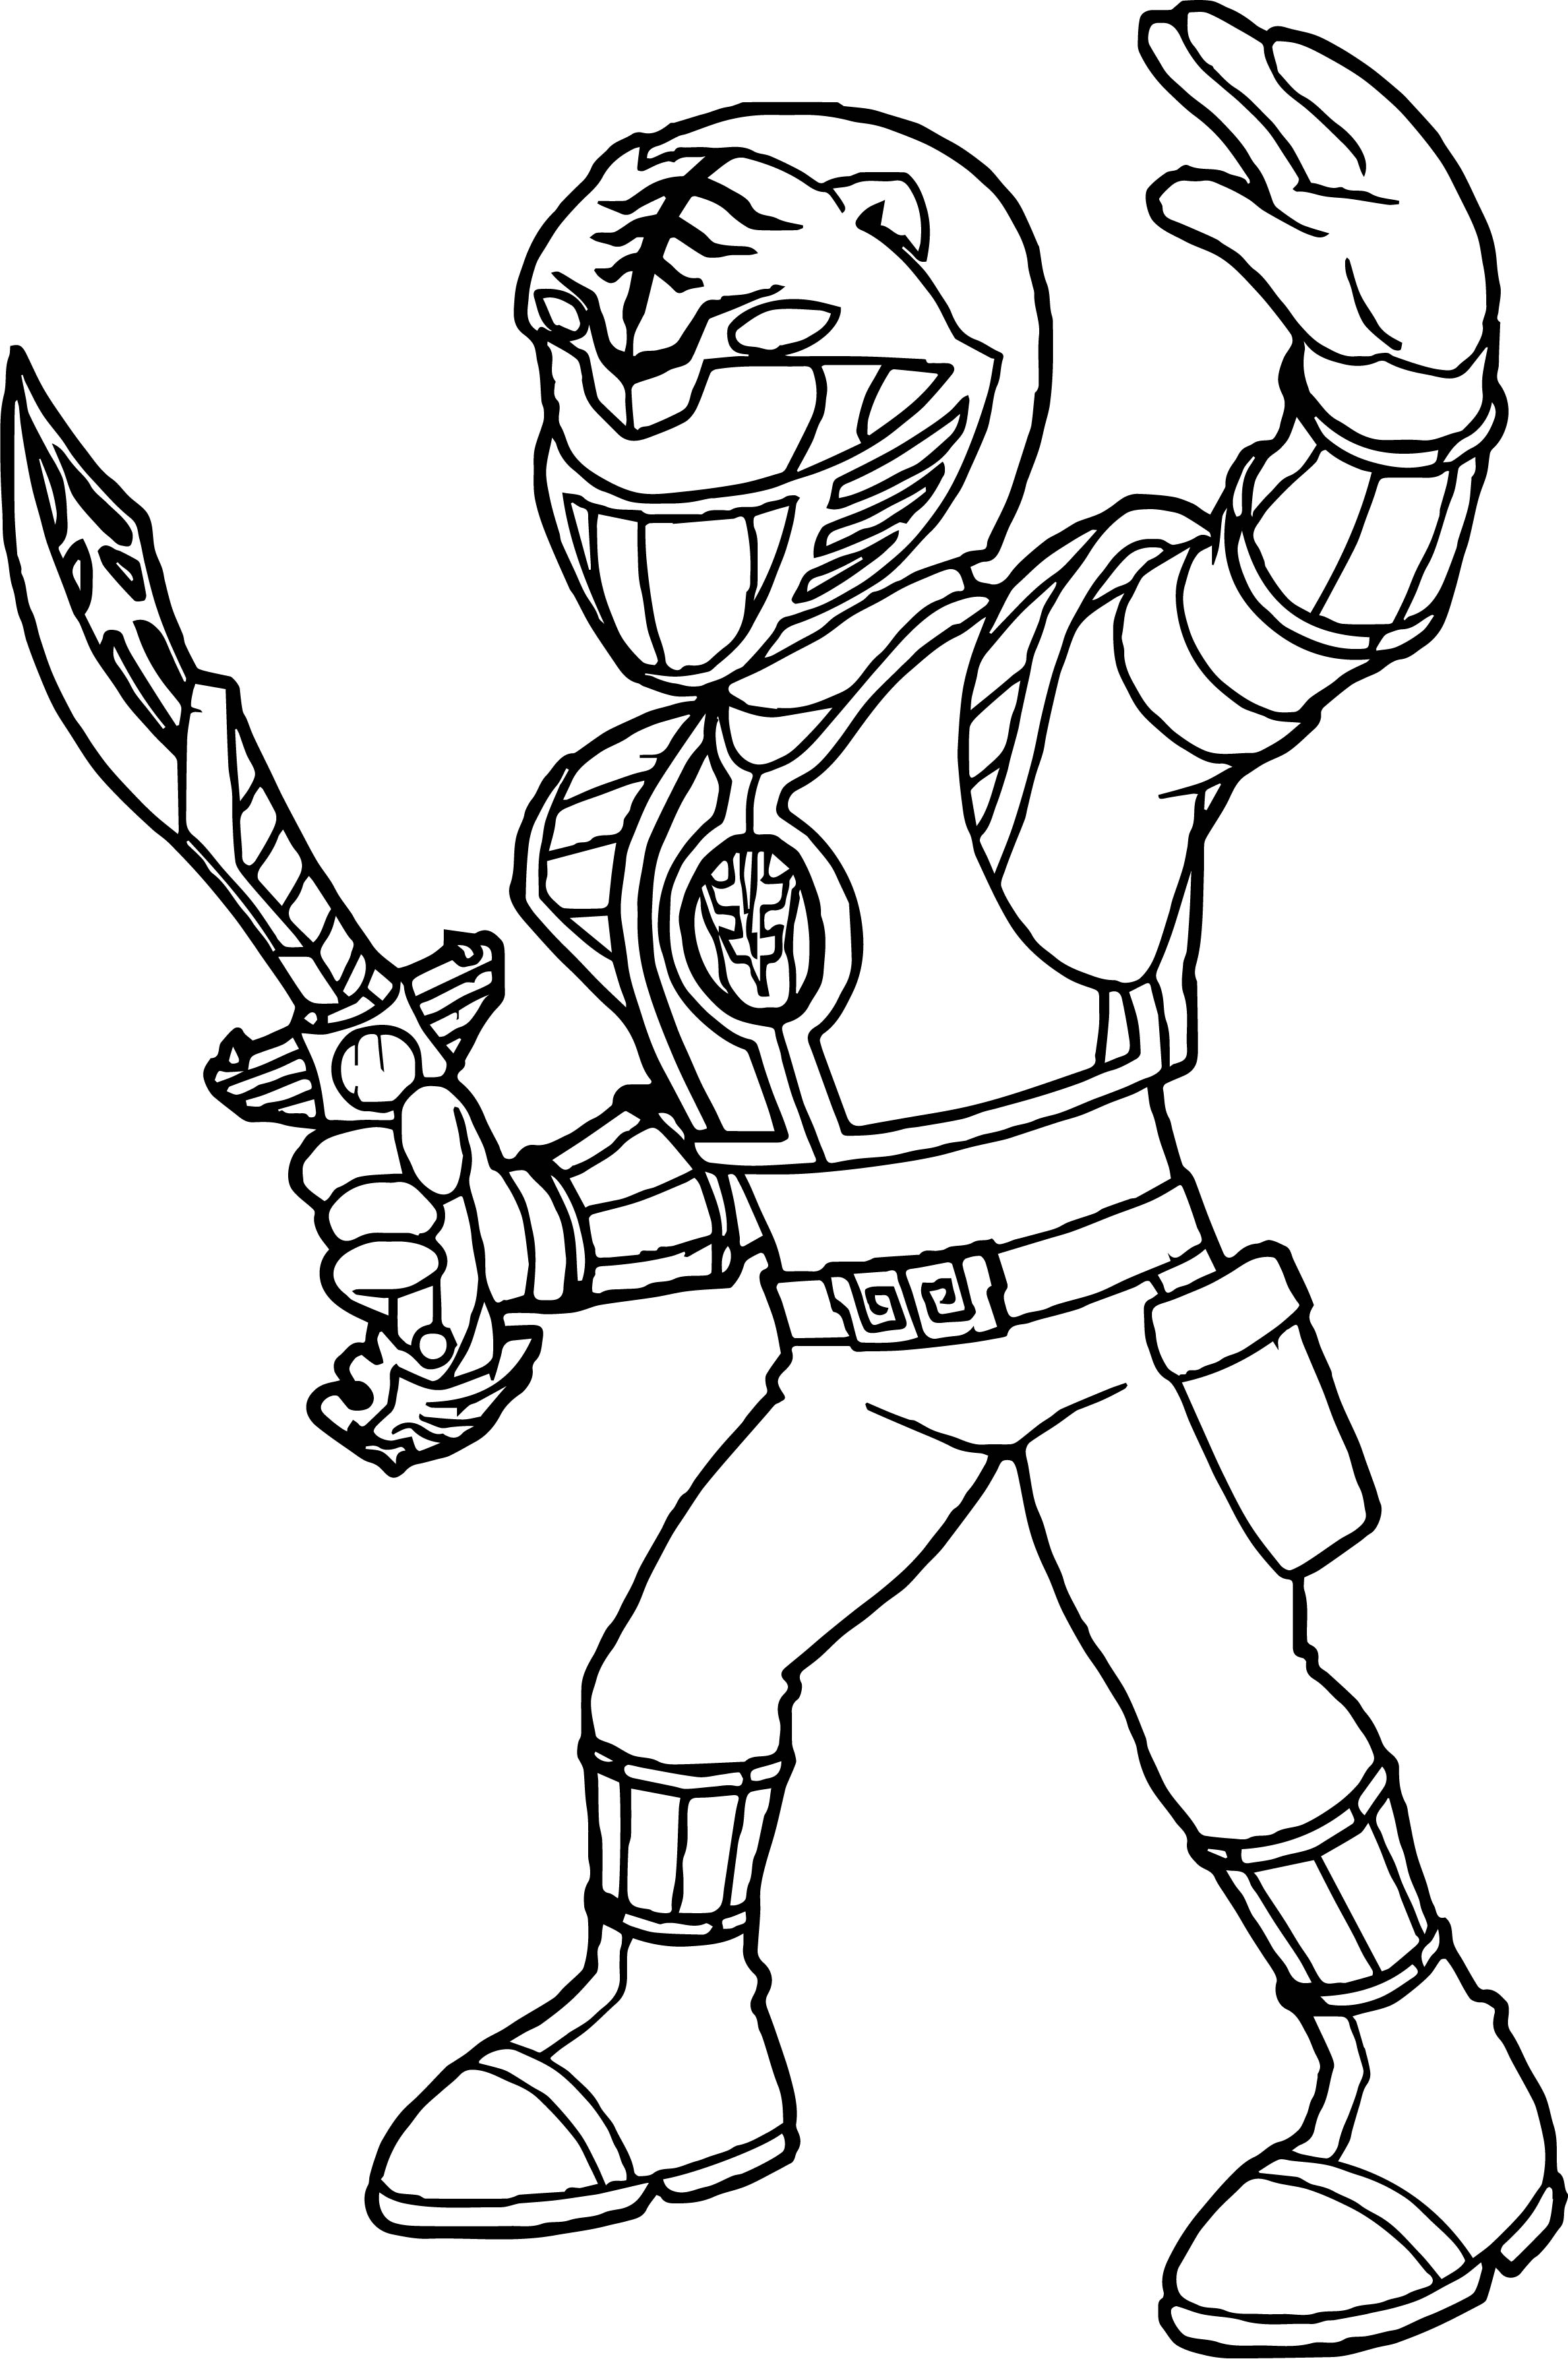 power ranger coloring pages power rangers coloring pages getcoloringpagescom coloring power ranger pages